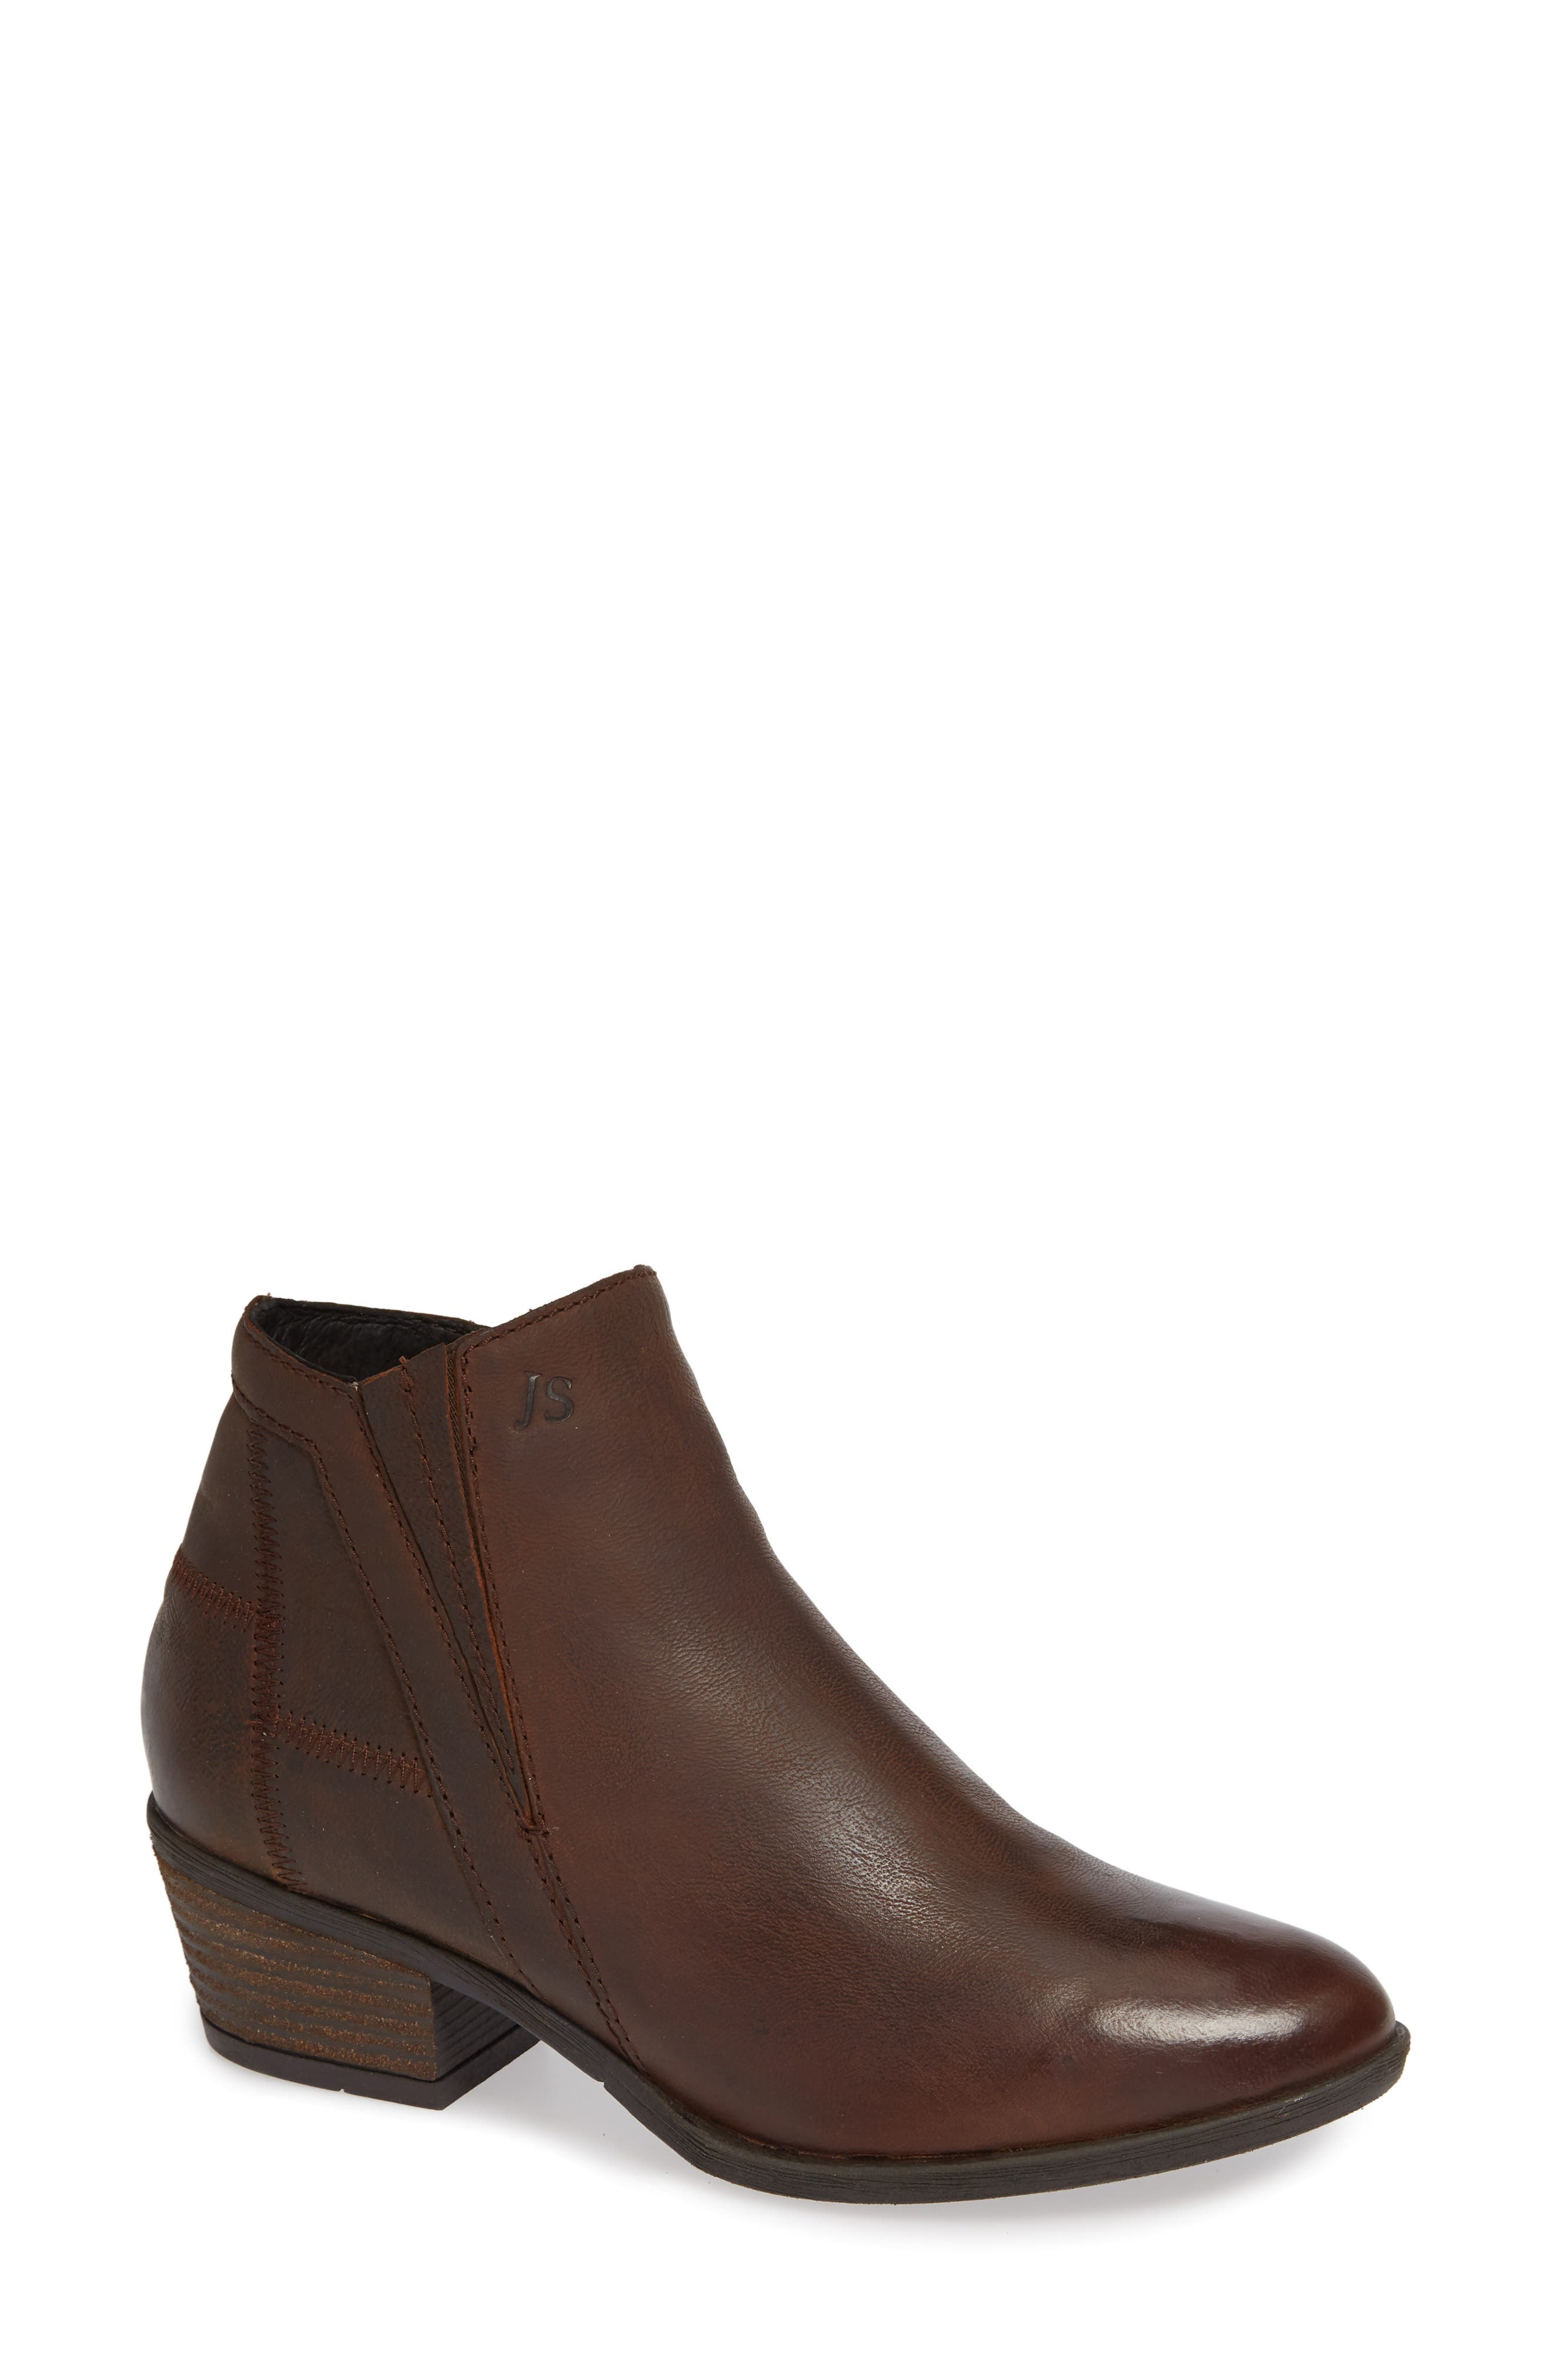 JOSEF SEIBEL,                             Daphne Bootie,                             Main thumbnail 1, color,                             MORO WASHED LEATHER